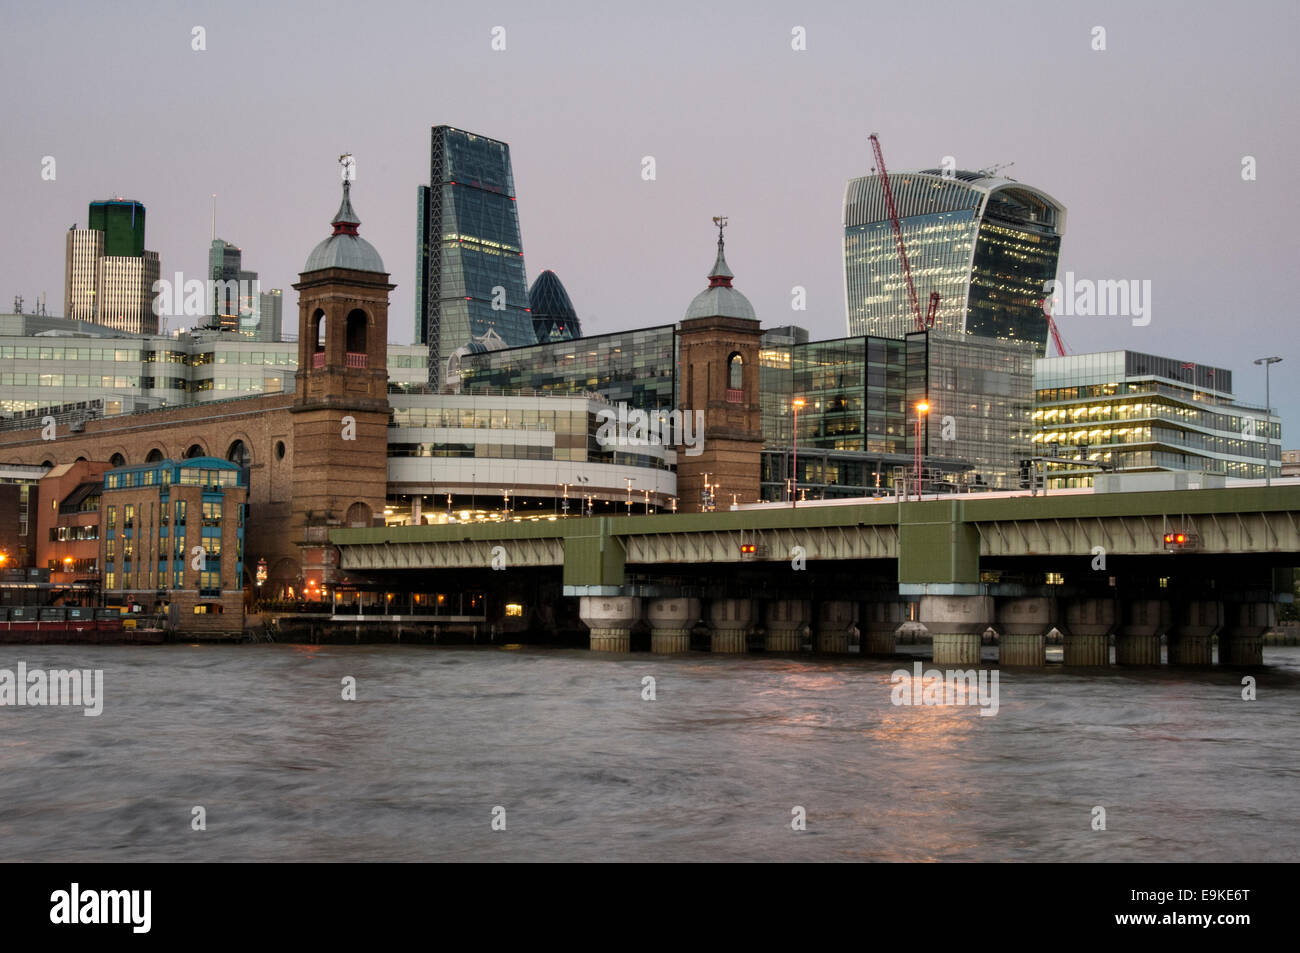 Cannon Street station and the River Thames and the city of London - Stock Image